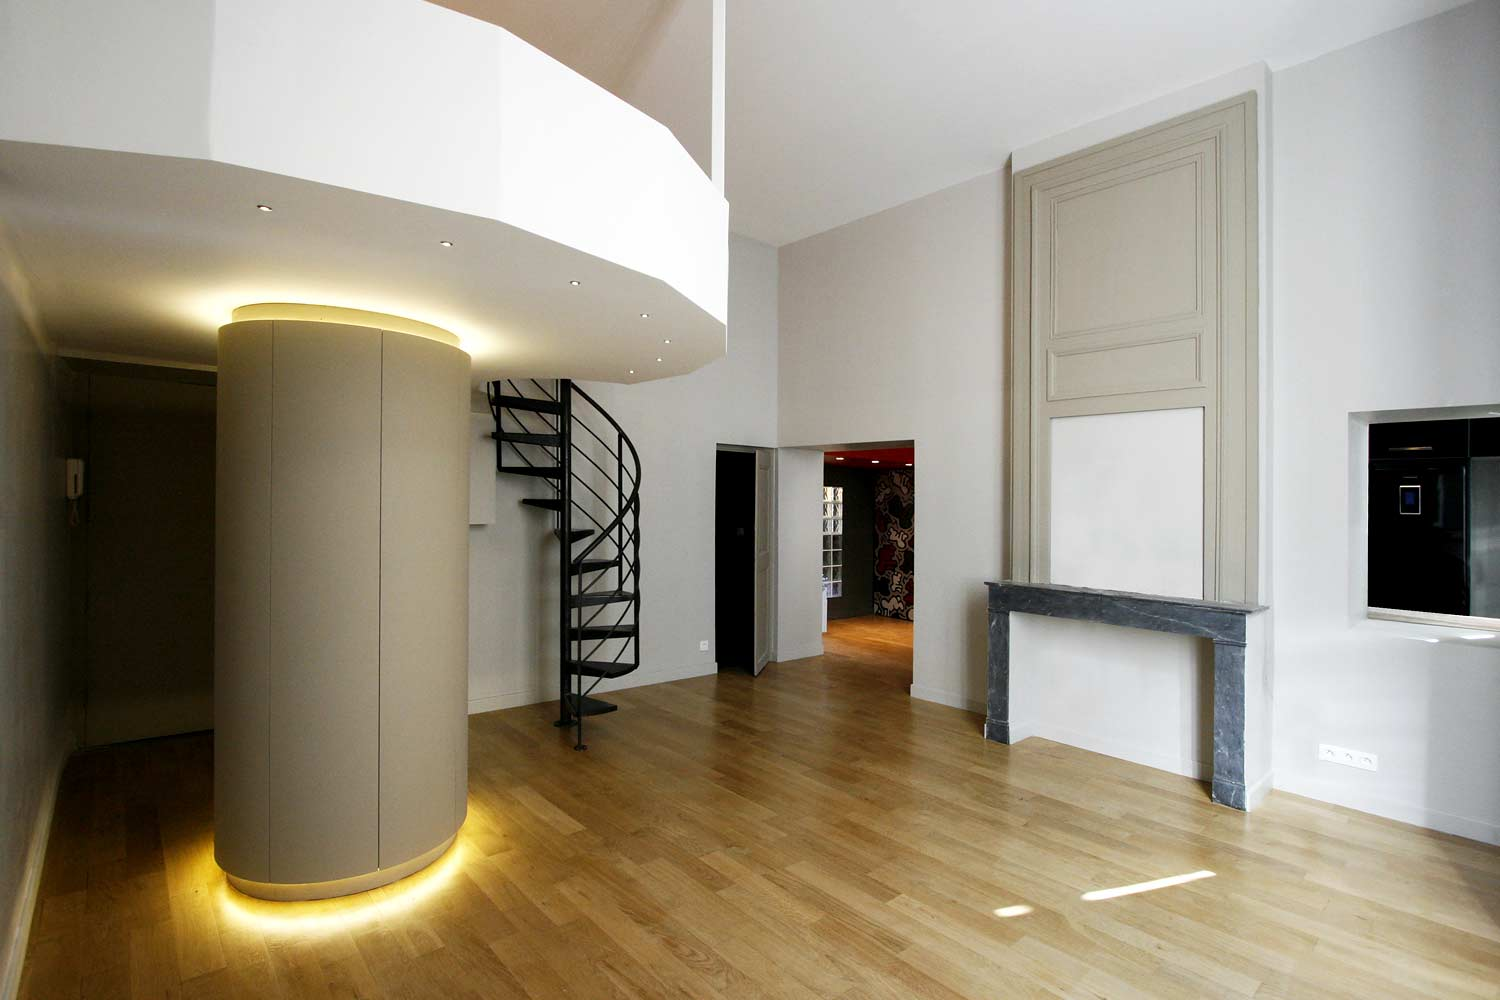 images2appartement-22.jpg